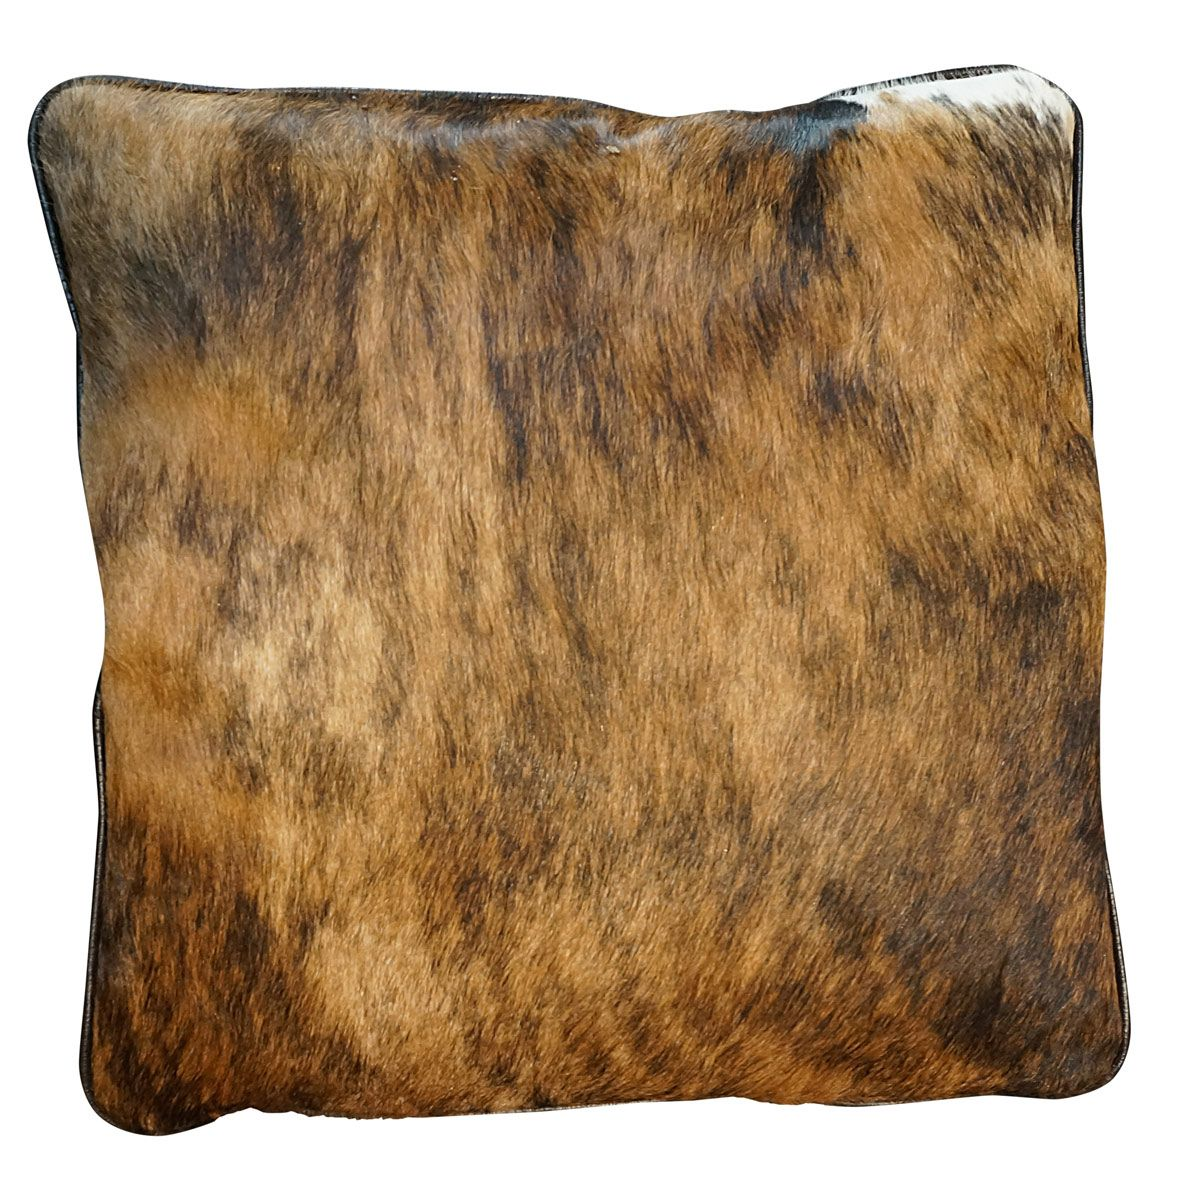 Cowhide Square Pillow - Dark Brindle